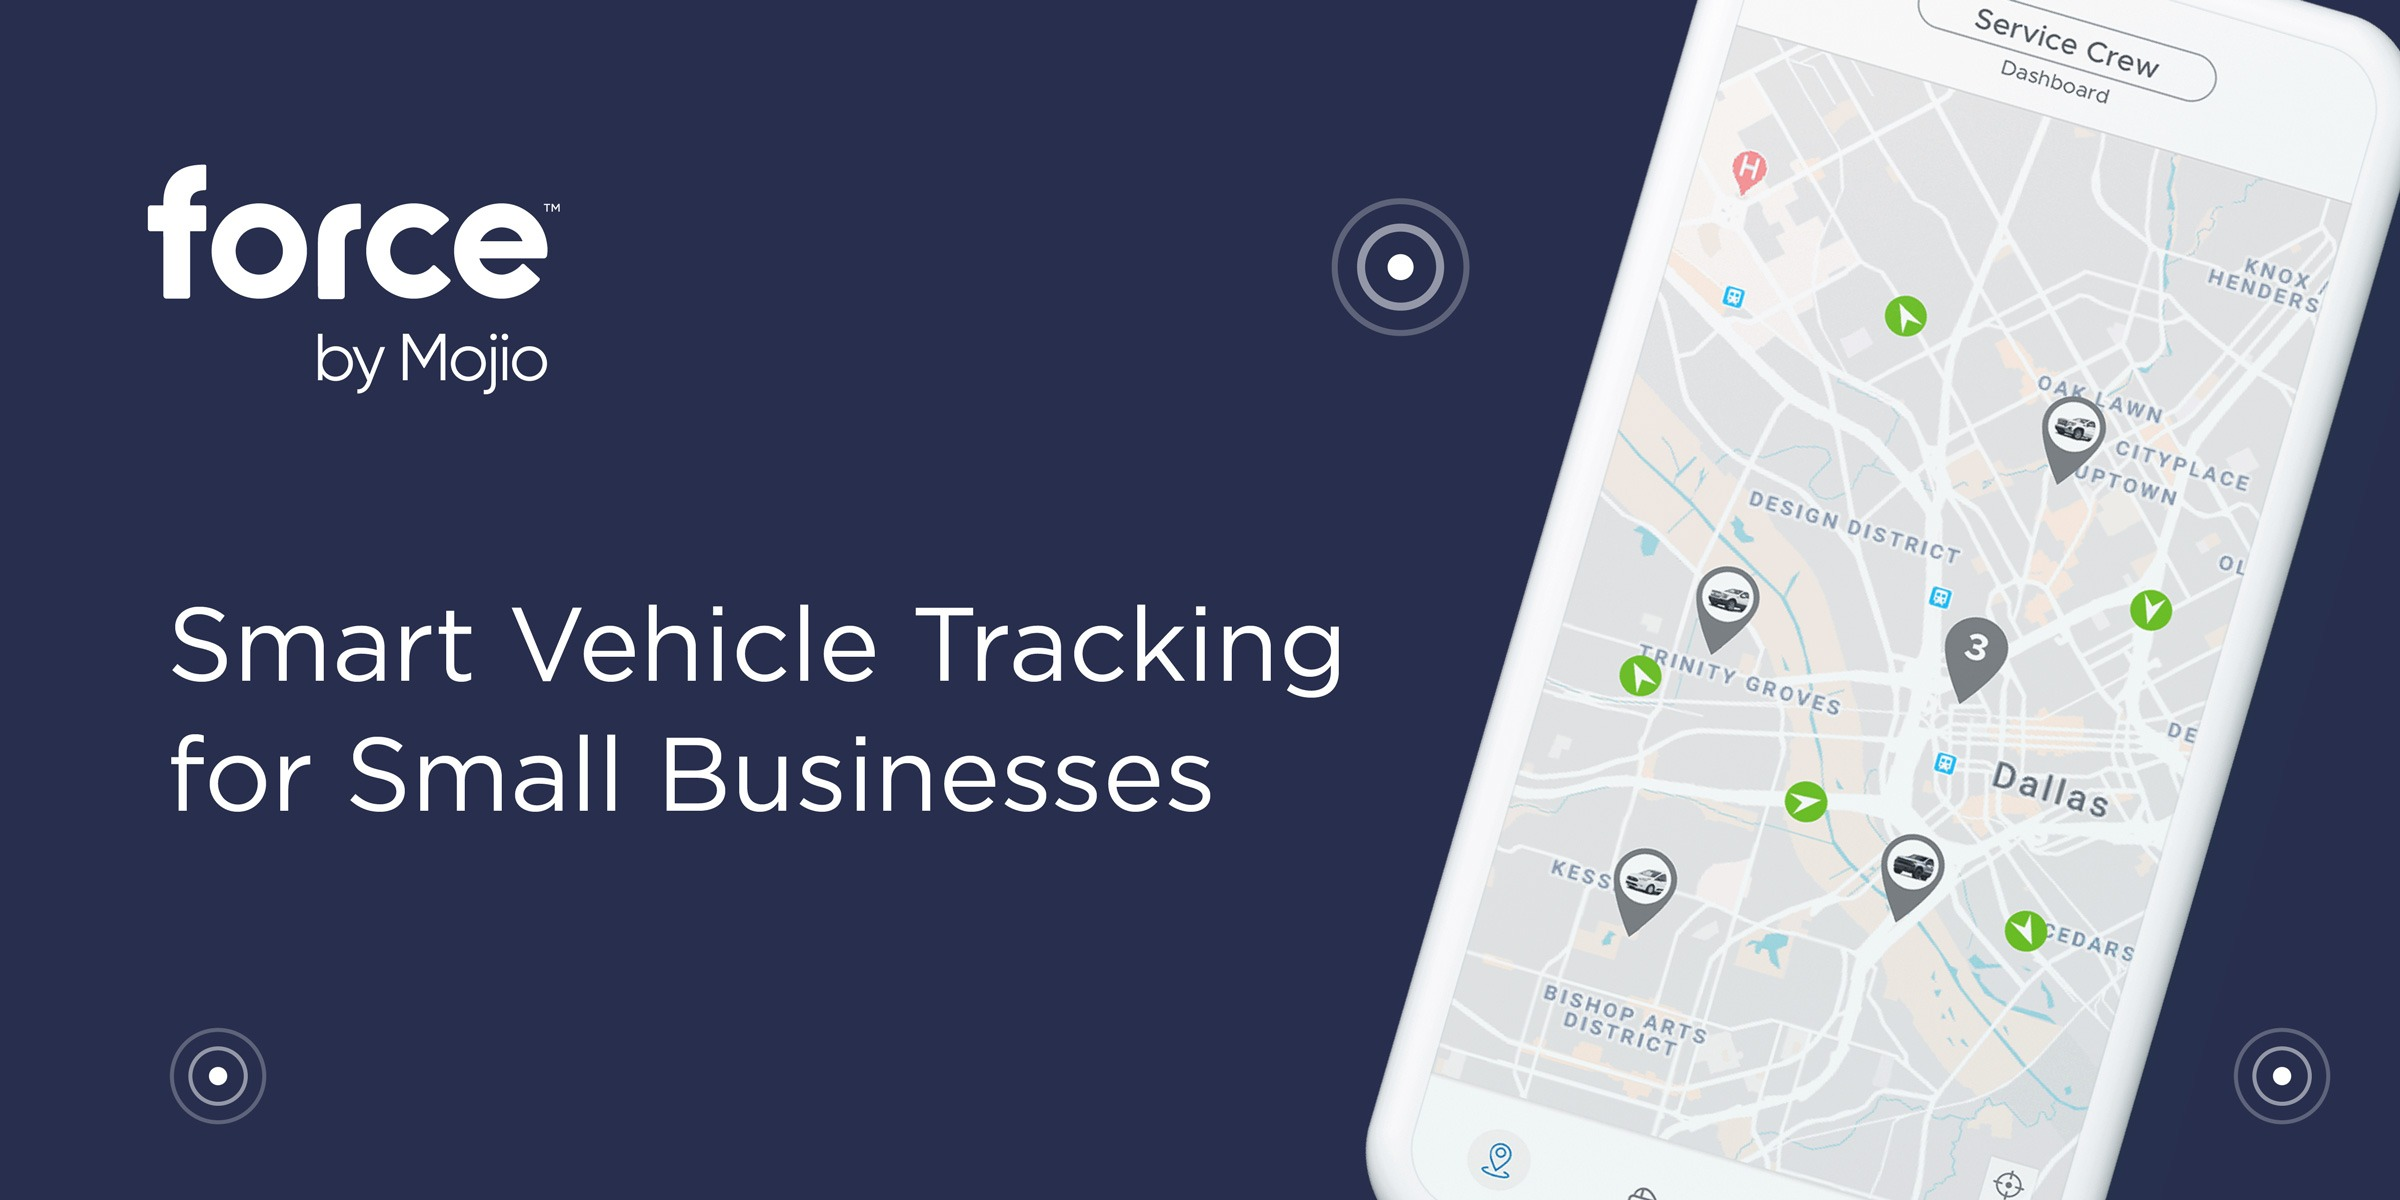 Mojio Puts Small Businesses First With New Vehicle Tracking & Fleet Management Solution